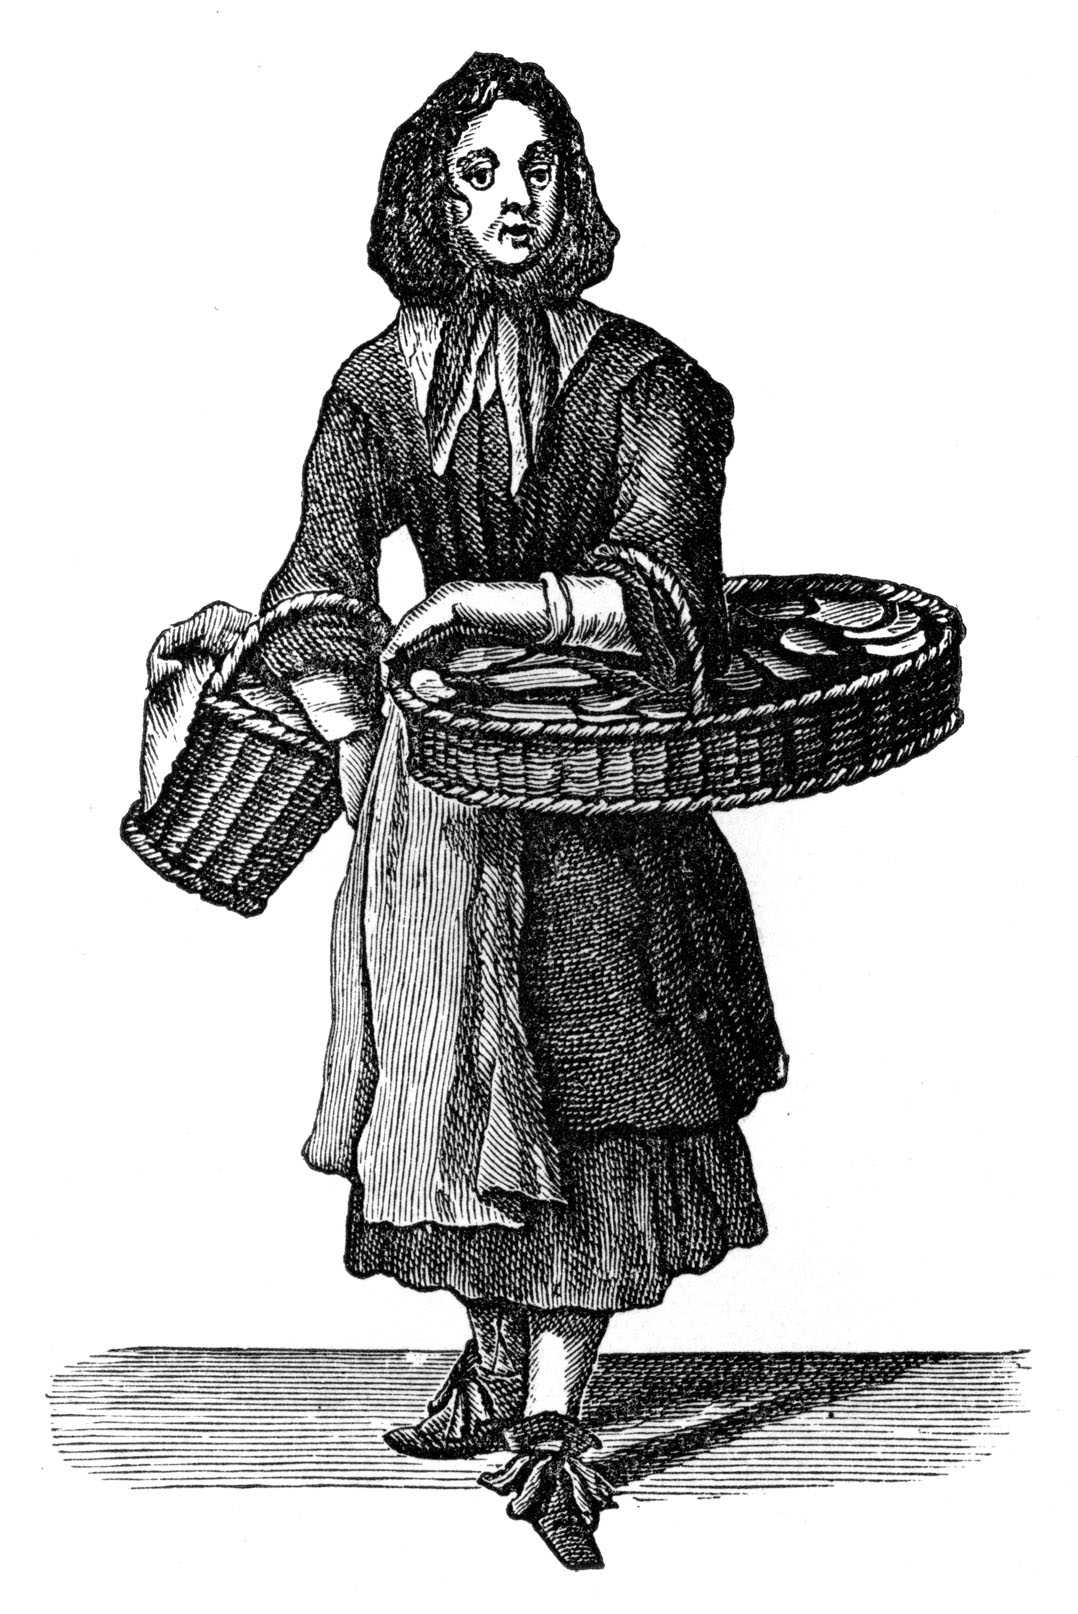 The Cries of London: 'Buy my Dutch Biskets' by Marcellus Laroon, 1689. Woman selling Dutch biscuits. Series of etchings first published by Pierce Tempest (London) under the title 'The Crys of London, both Men and Women, Drawn after life, in variety of Actions and Habits.' Marcellus Laroon the Elder, Franco- Dutch painter, 1653-1702. Pierce Tempest, printseller, 1653–1717. (Photo by Culture Club/Getty Images) *** Local Caption ***